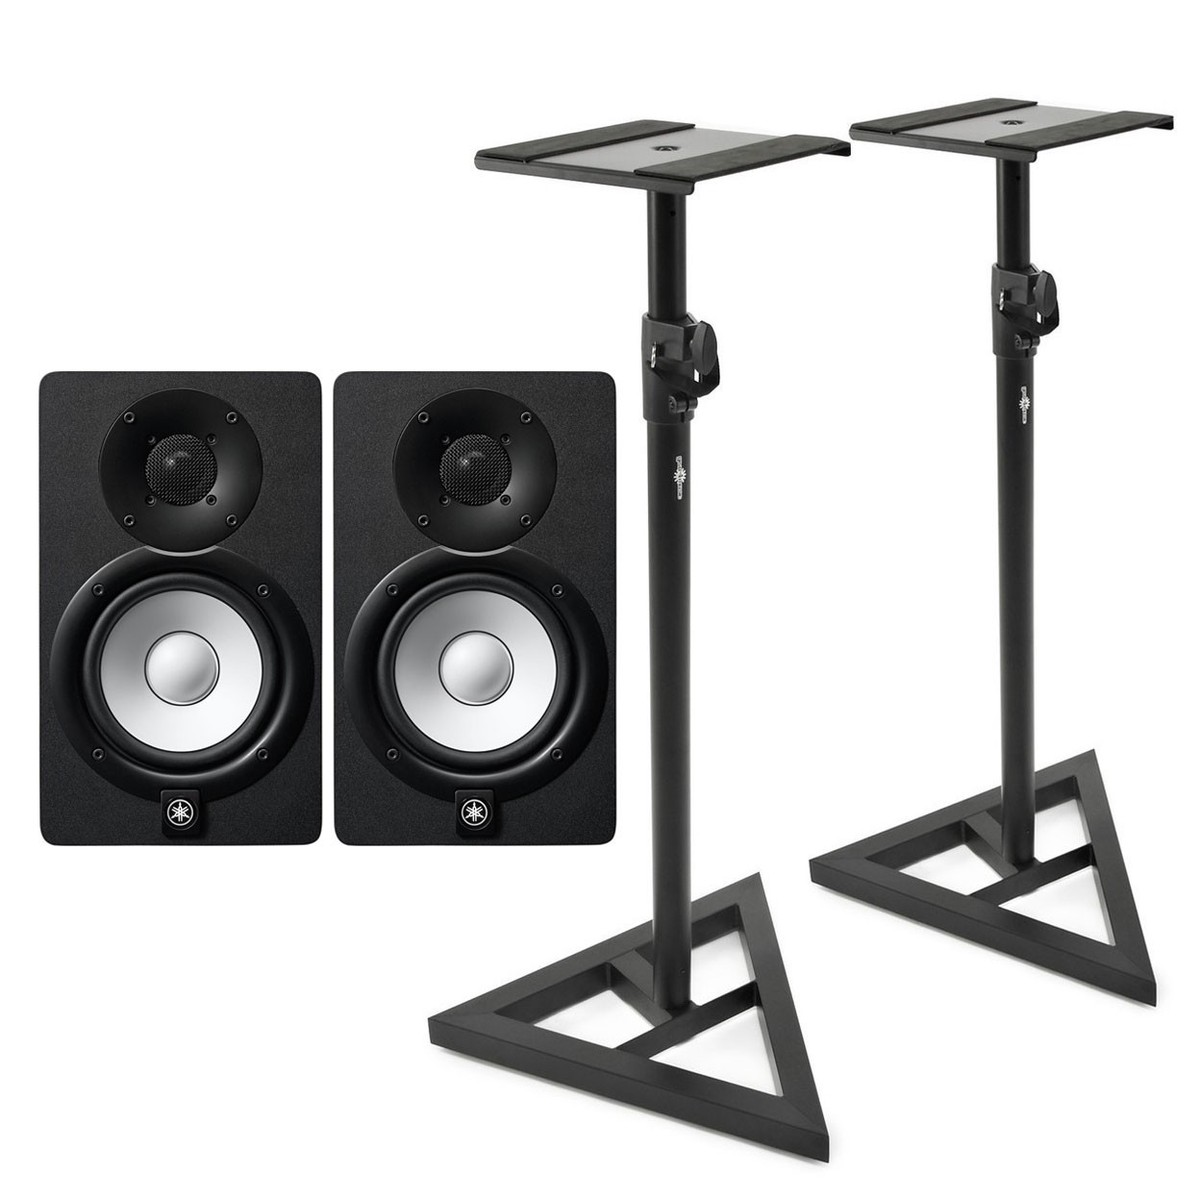 yamaha hs5 active studio monitors pair with stands at. Black Bedroom Furniture Sets. Home Design Ideas